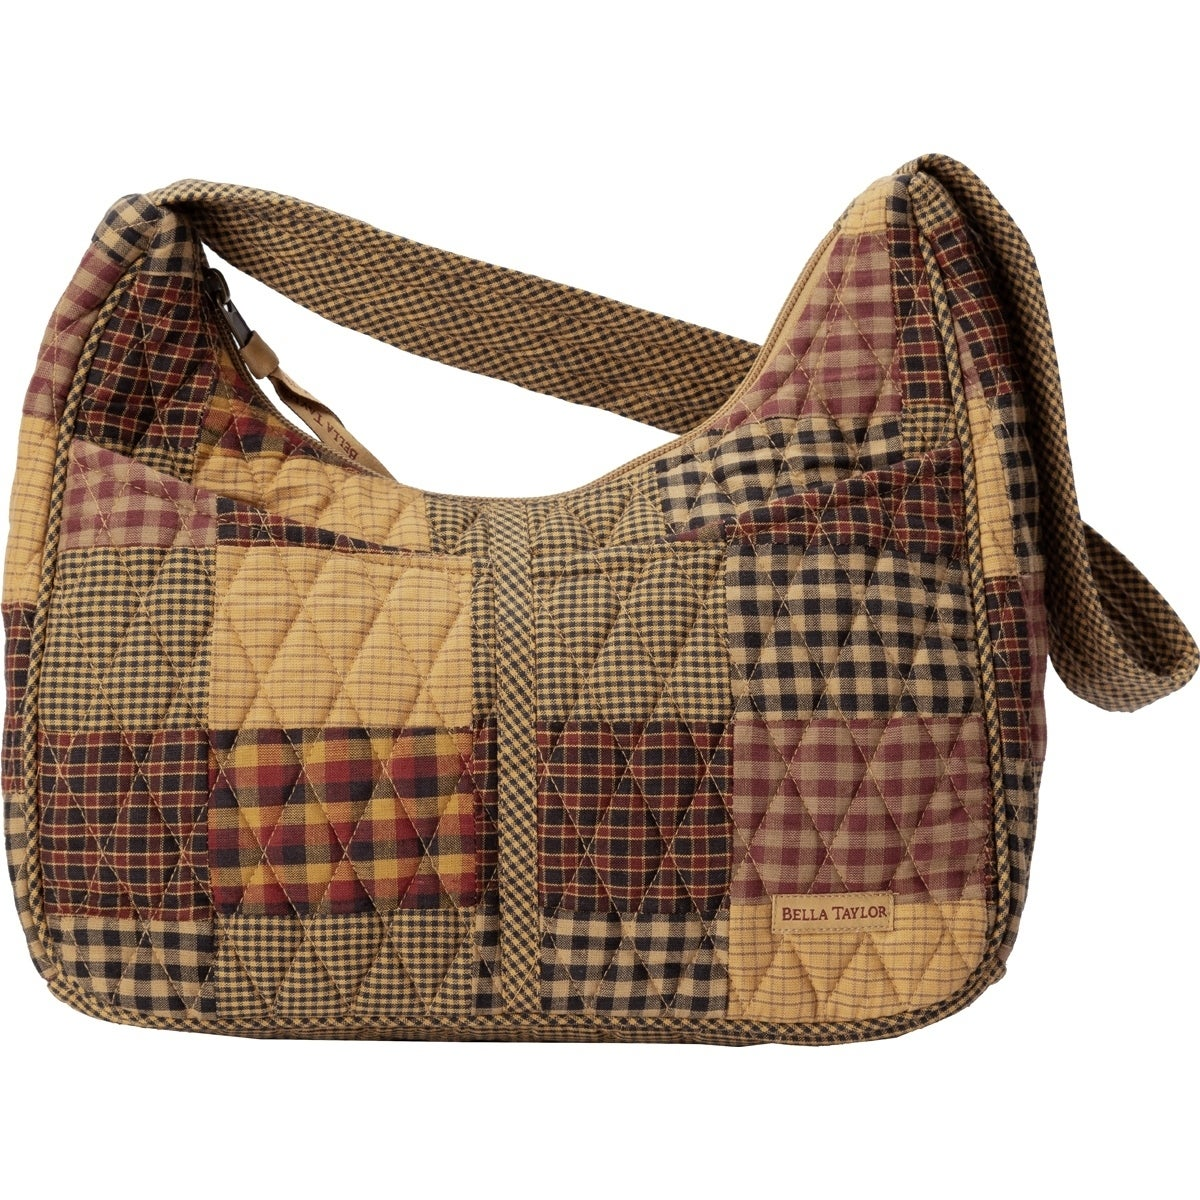 Vhc Heritage Crimson Red Bella Taylor Handbags Plaid Blakely Free Shipping On Orders Over 45 22889776